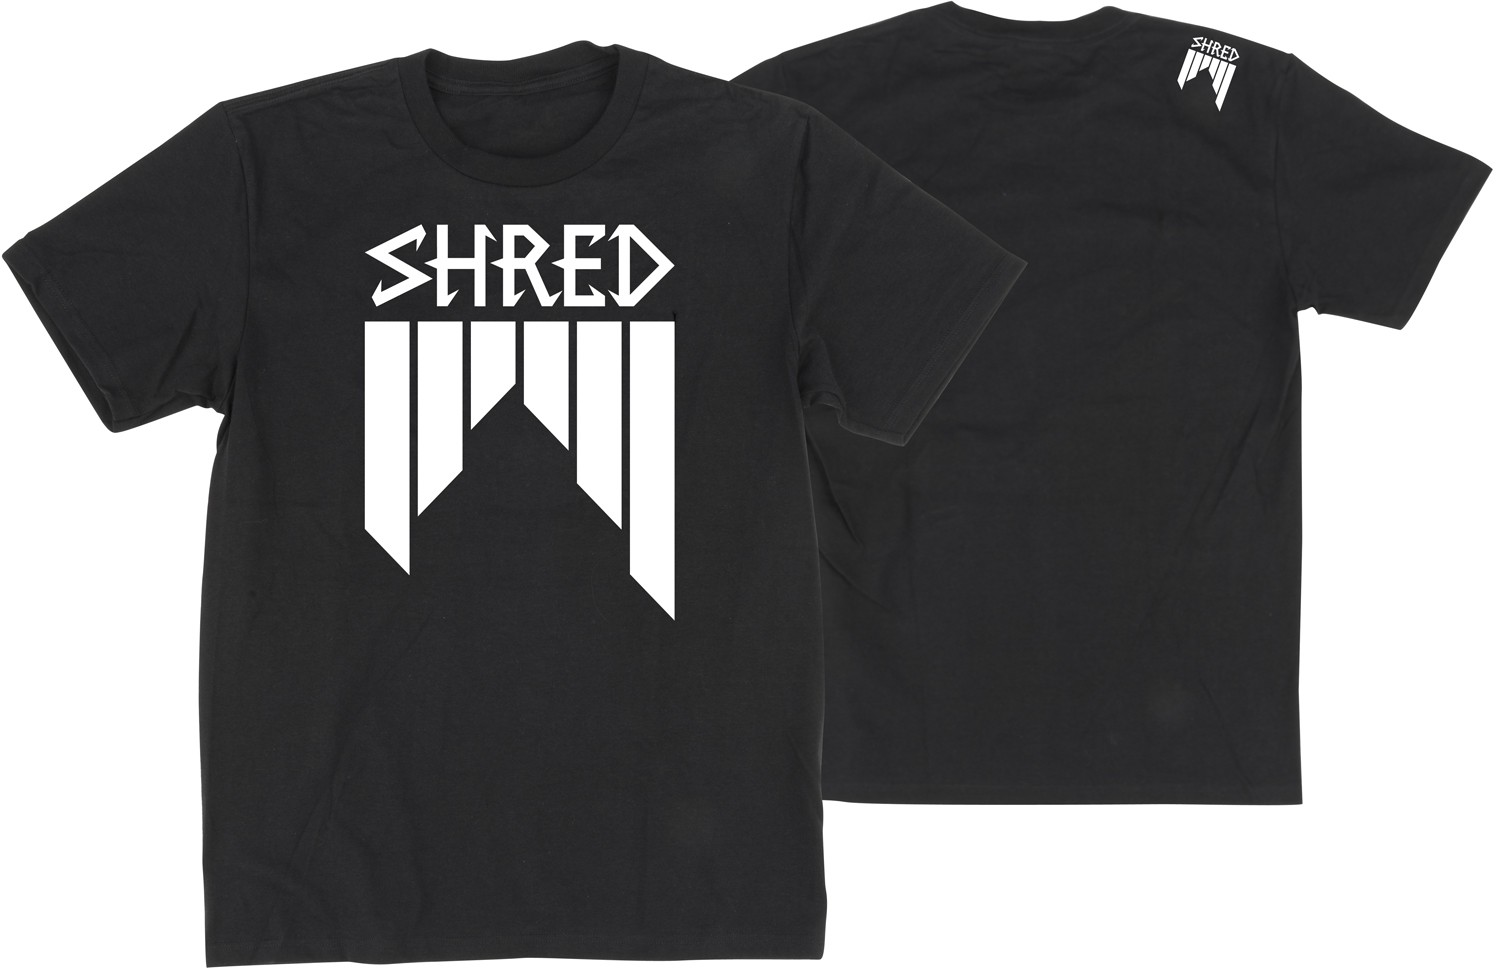 Shred T-shirt LOGO EU (unisex)